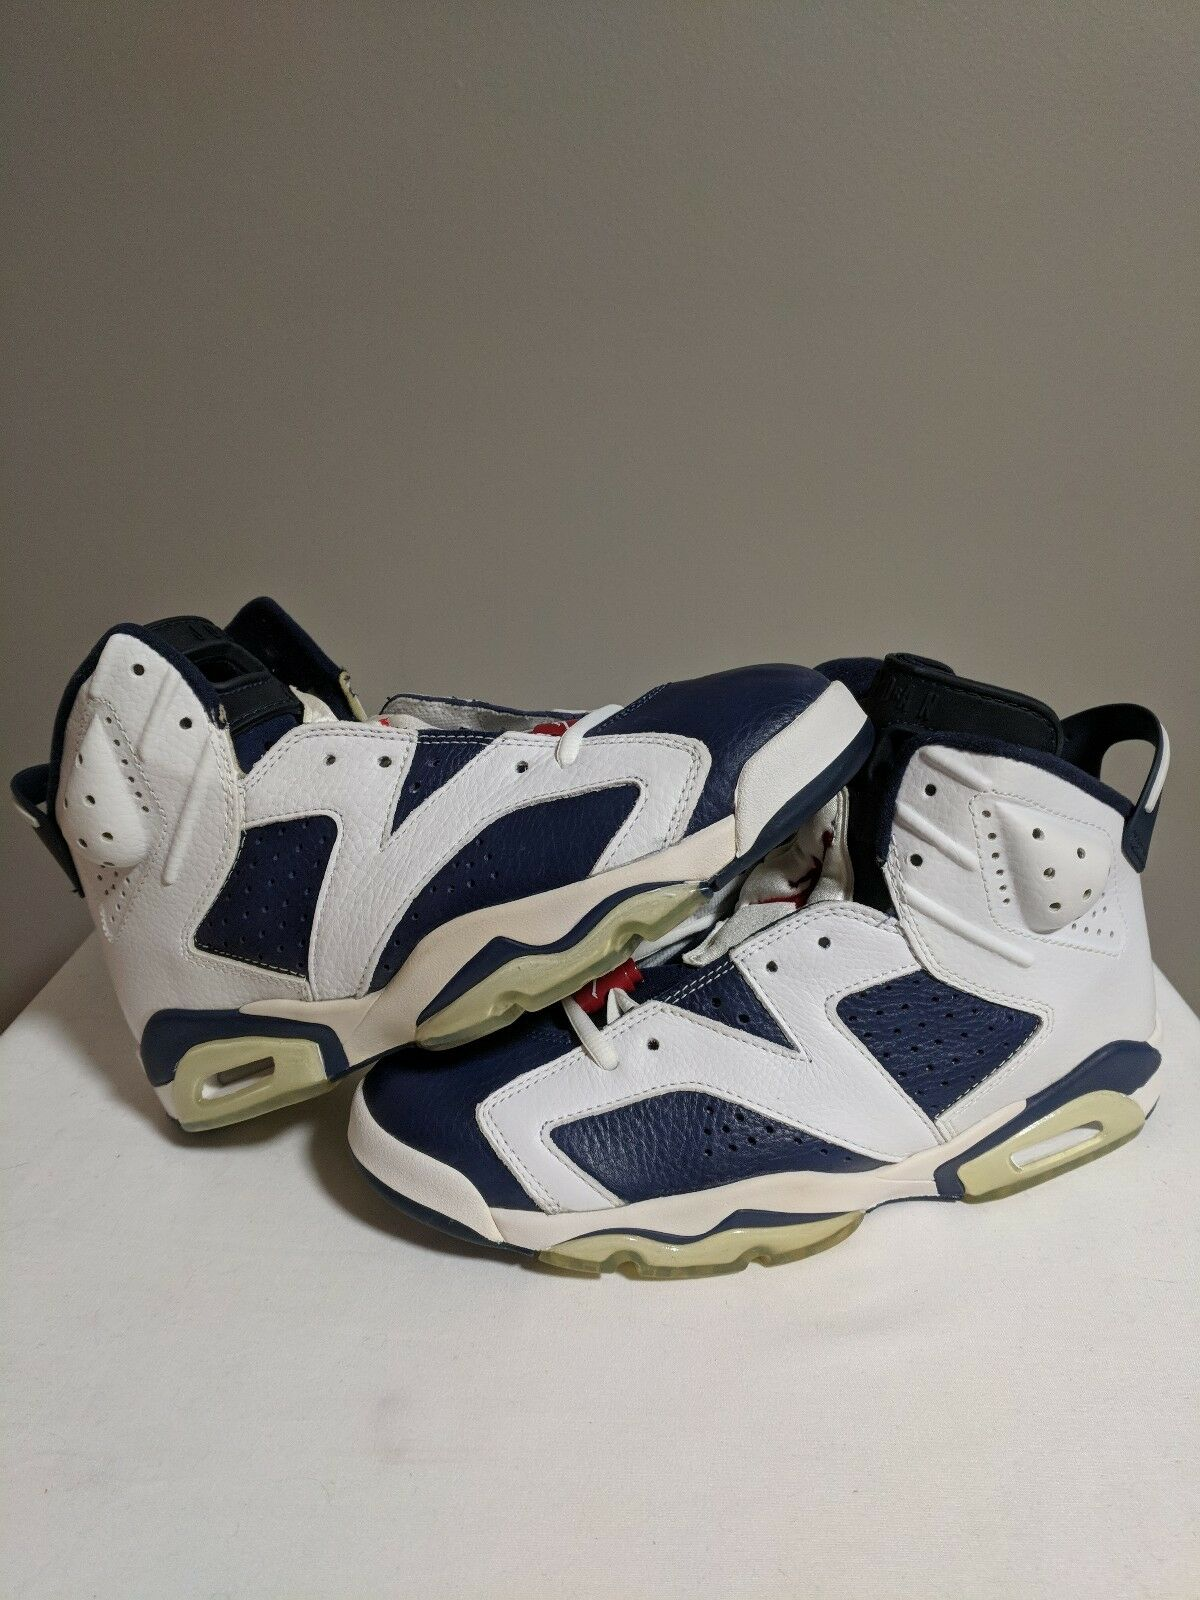 Jordan 6 Og Olympic 2000 Sydney Red White bluee Ds Sz 9.5